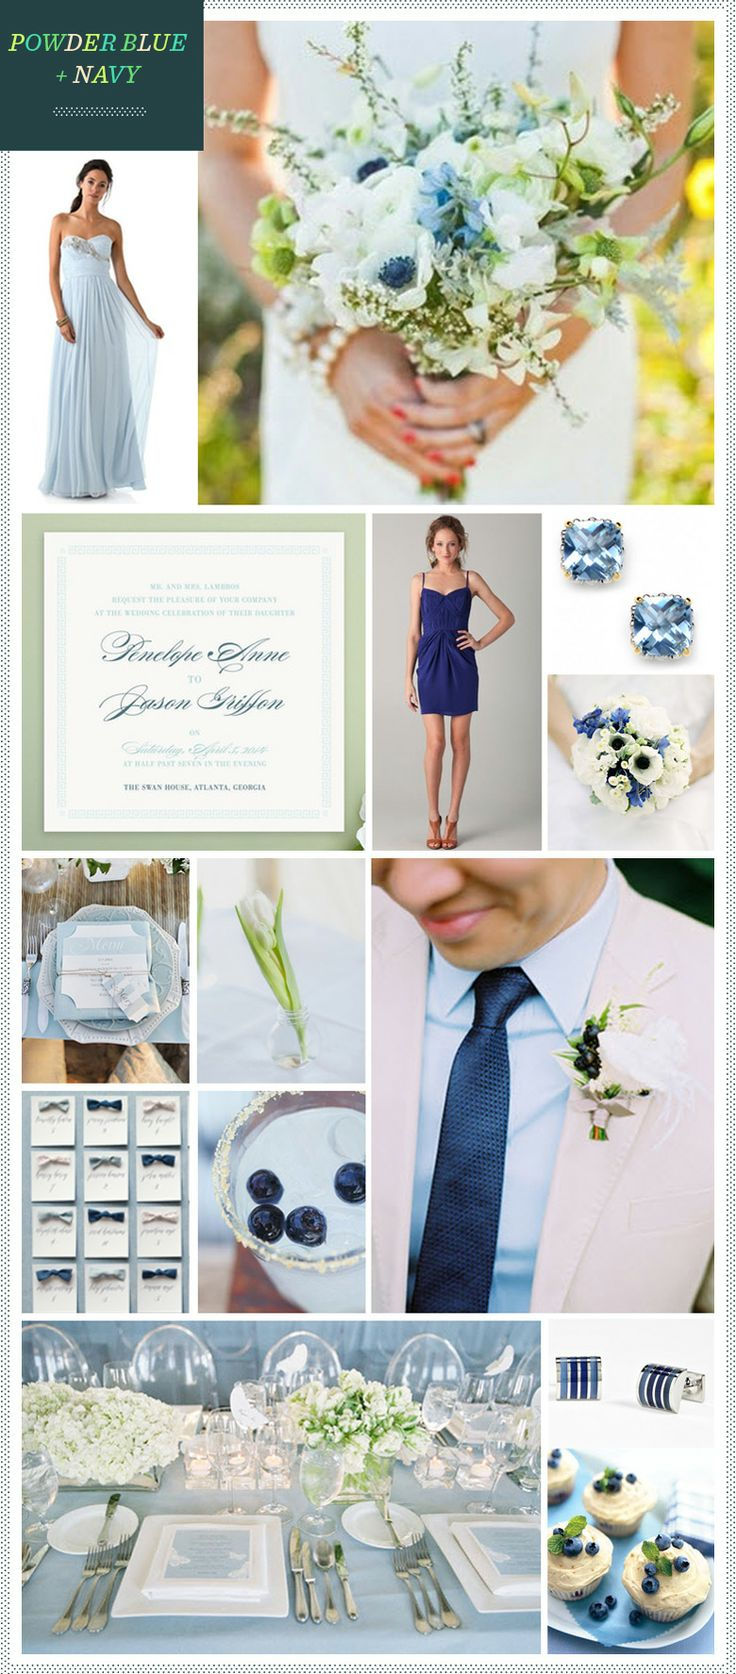 1000 Images About Navy Blush And Champagne Wedding Ideas On Pinterest